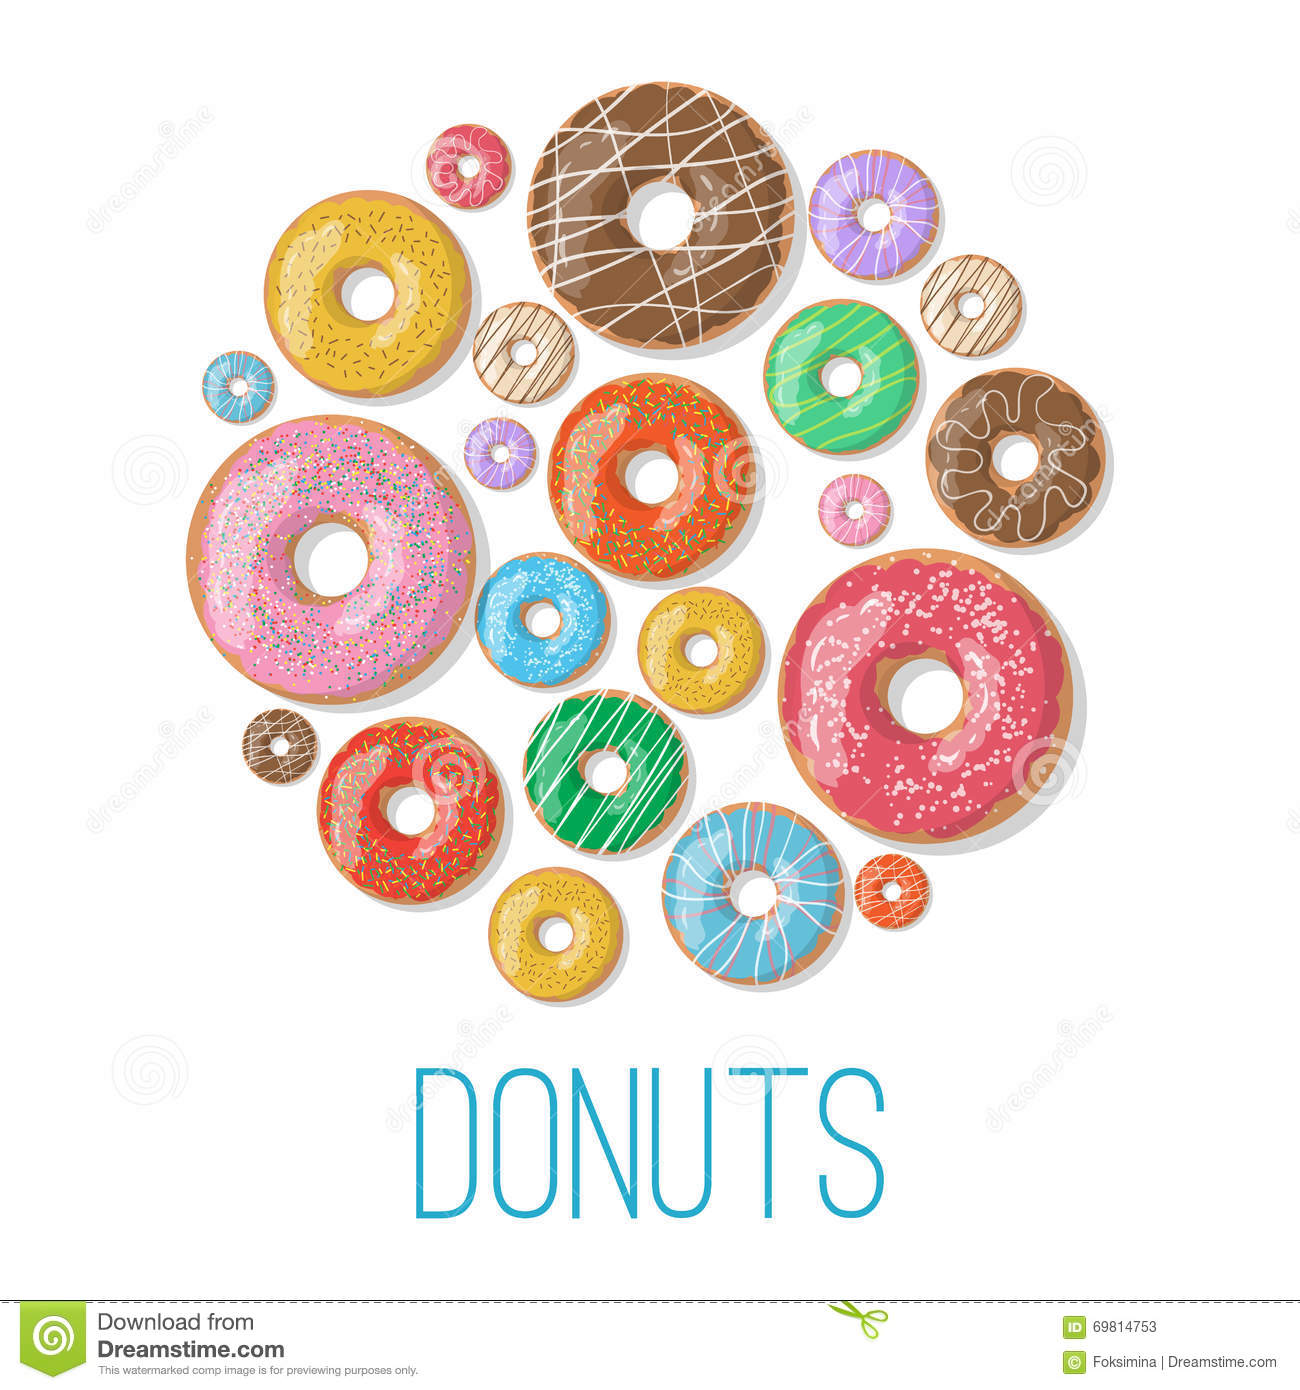 Cartoon Doughnut Factory: Bright Vector Banners With Donuts Illustration Isolated On